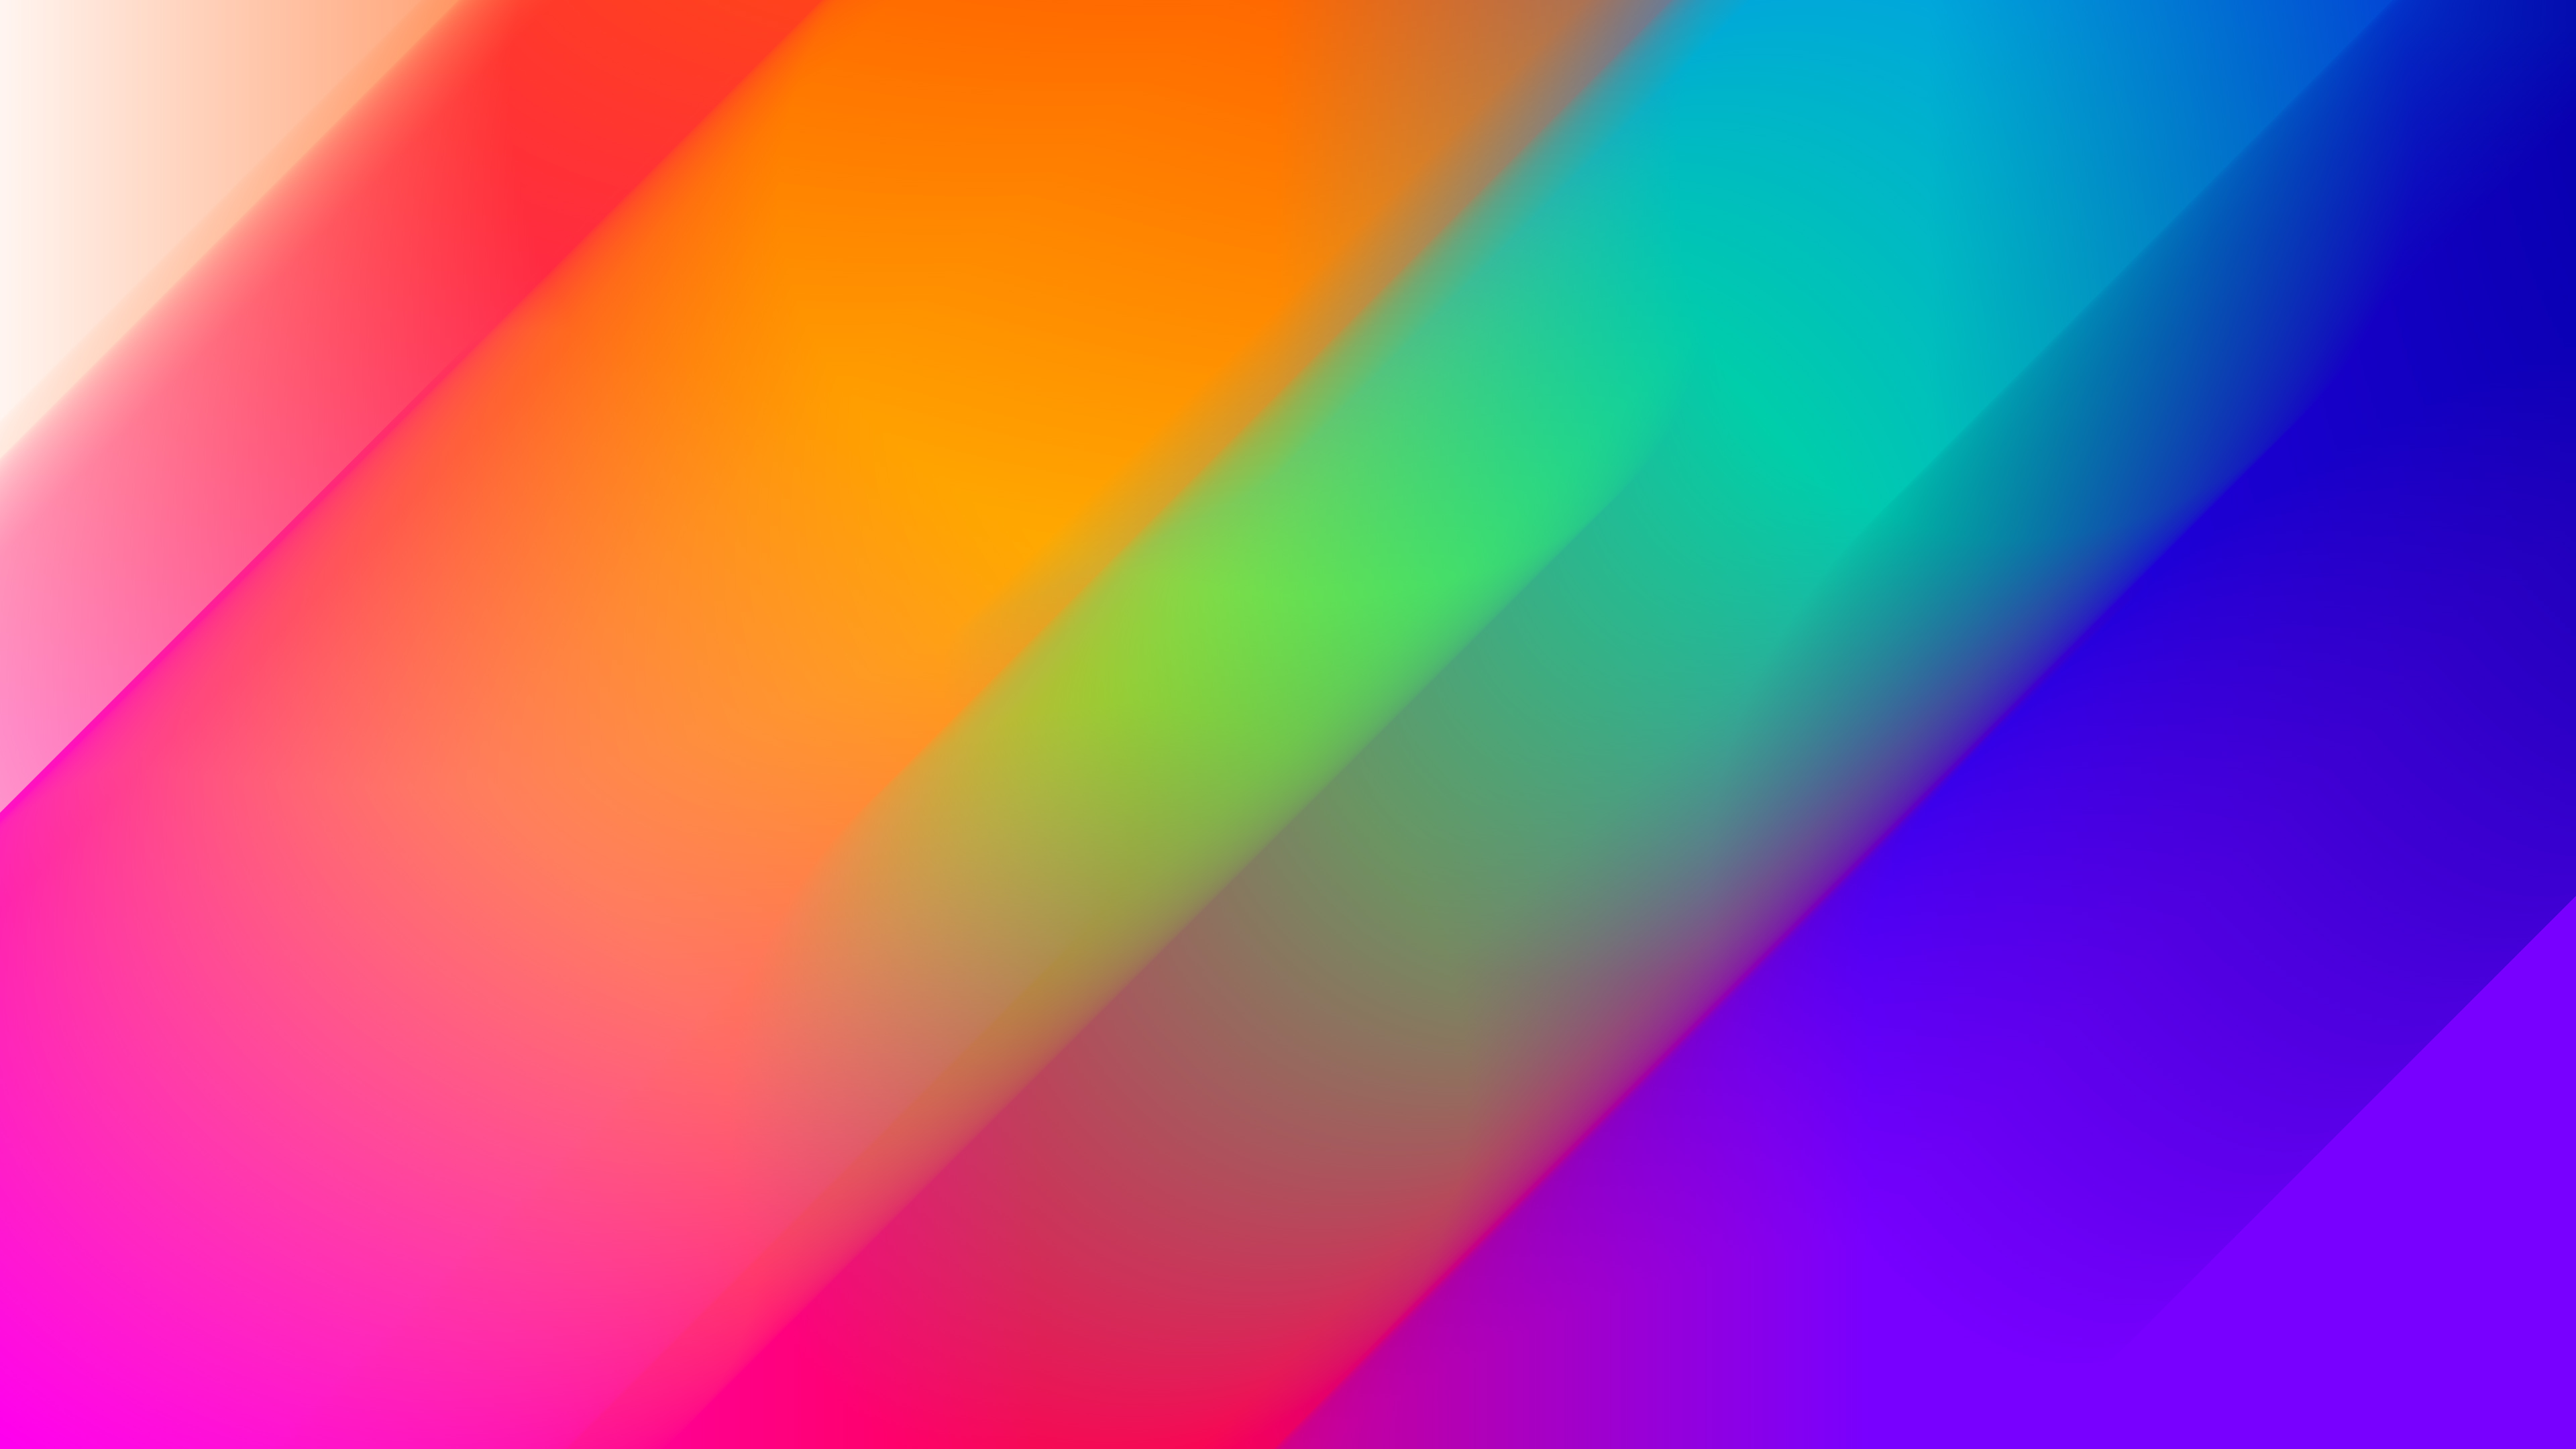 Colors 4k Ultra Hd Wallpaper Background Image 3840x2160